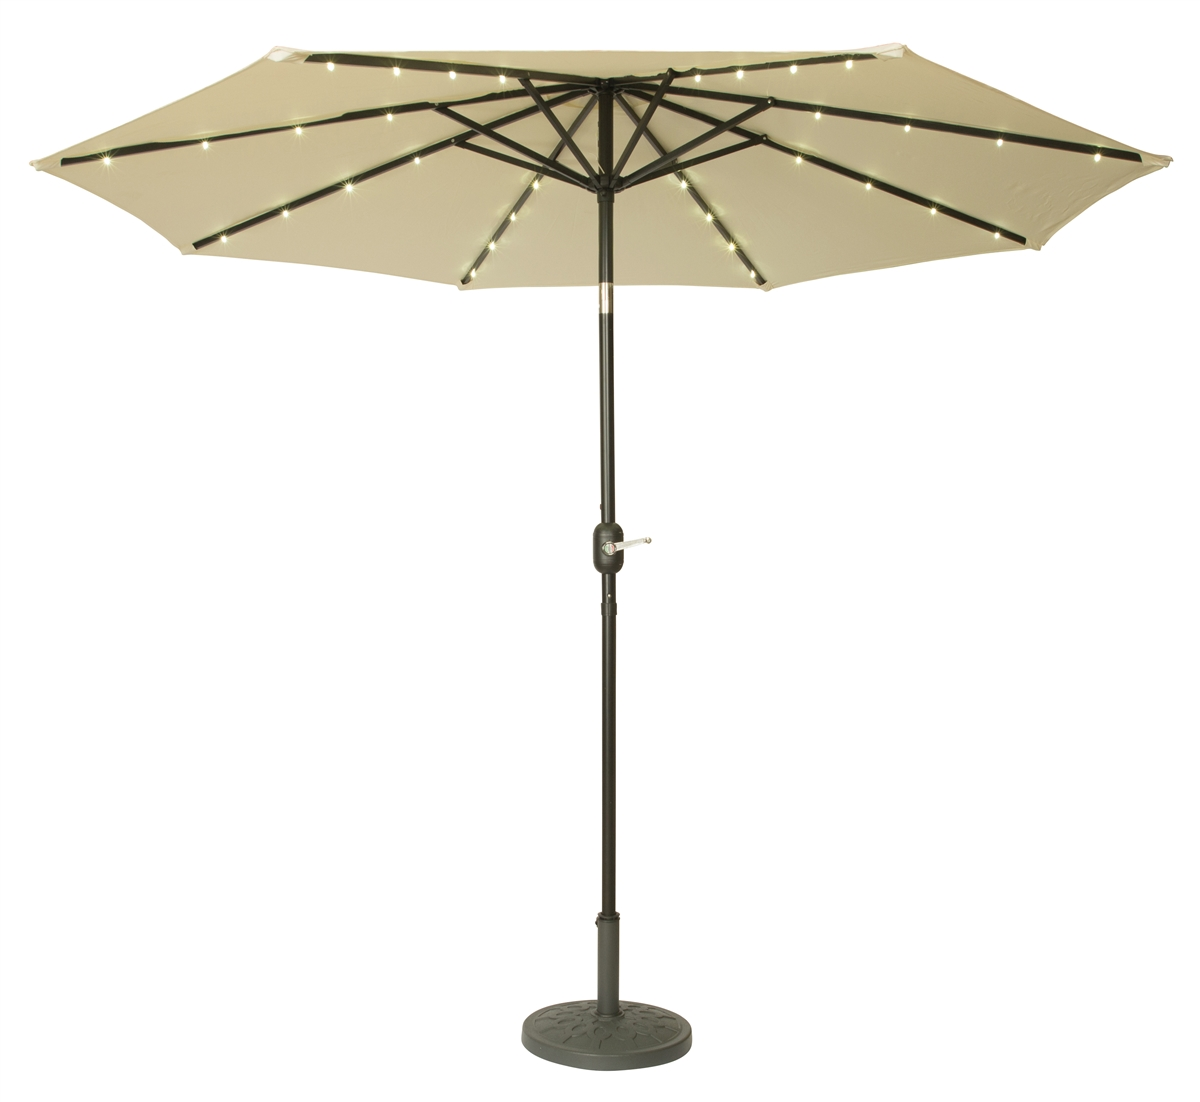 9u0027 Deluxe Solar Powered LED Lighted Patio Umbrella By Trademark Innovations  (Beige)